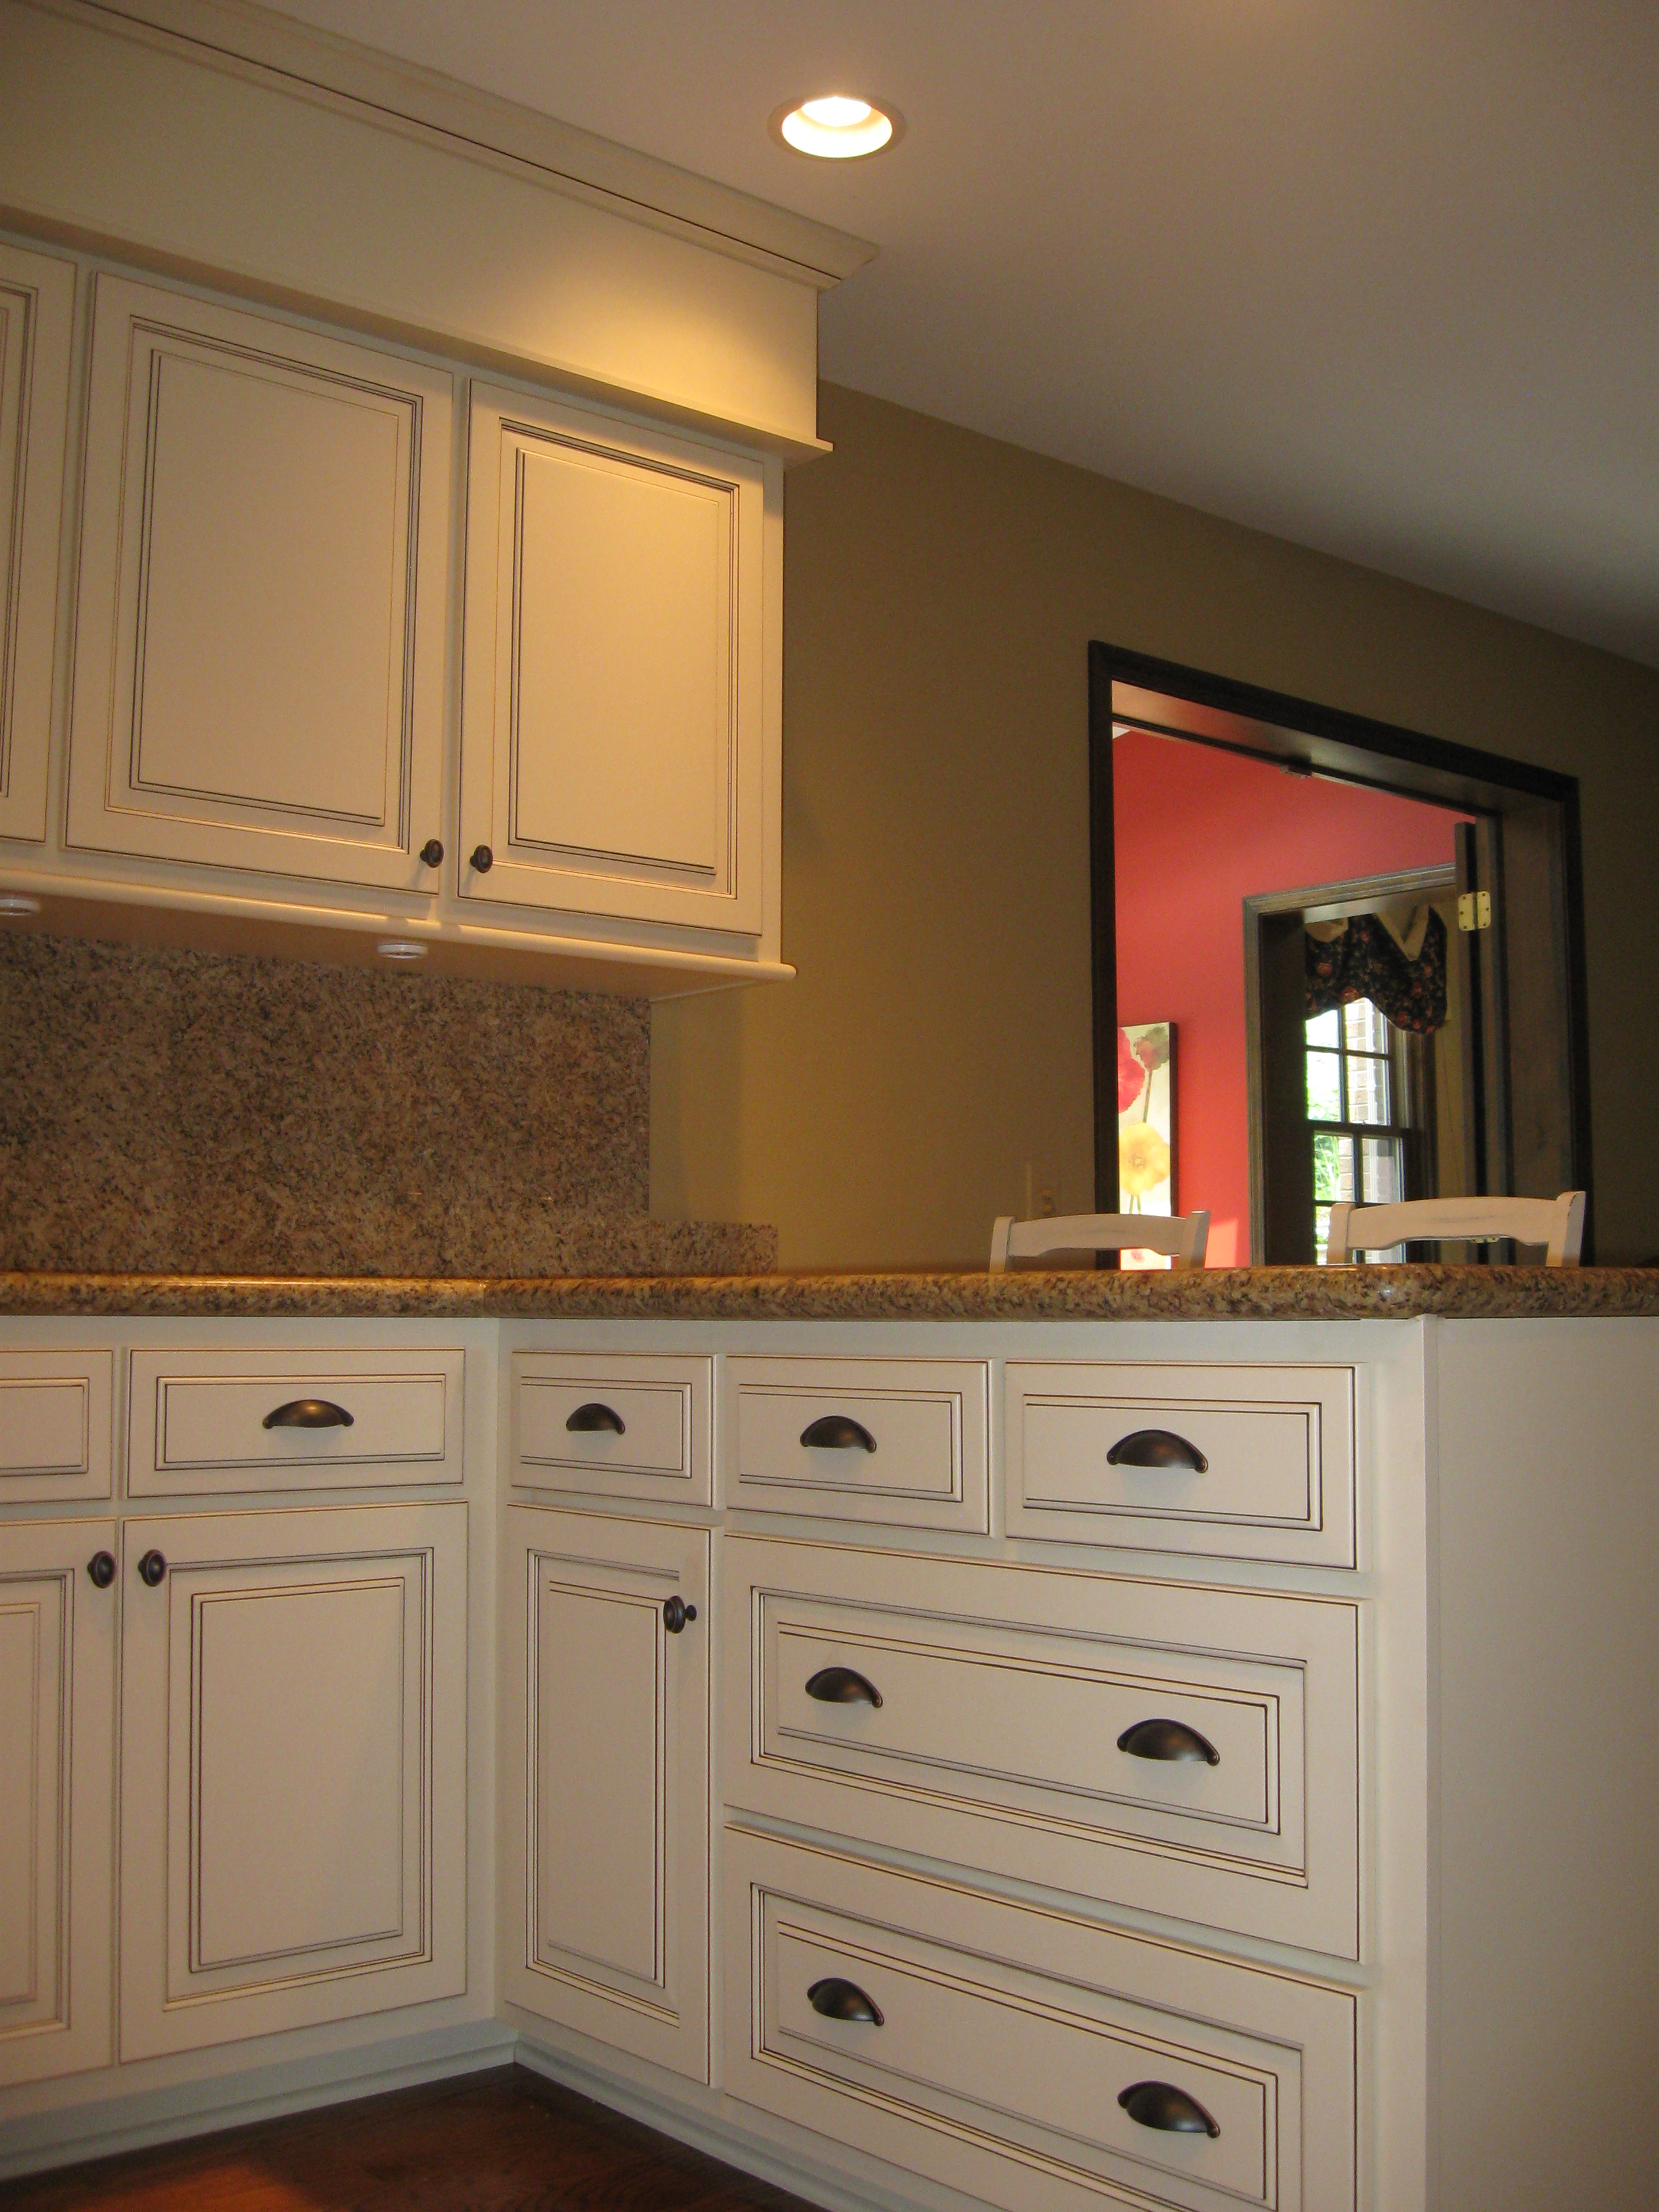 Dark Oak Cabinets Refaced In Solid Maple With Glazed Off White Finish